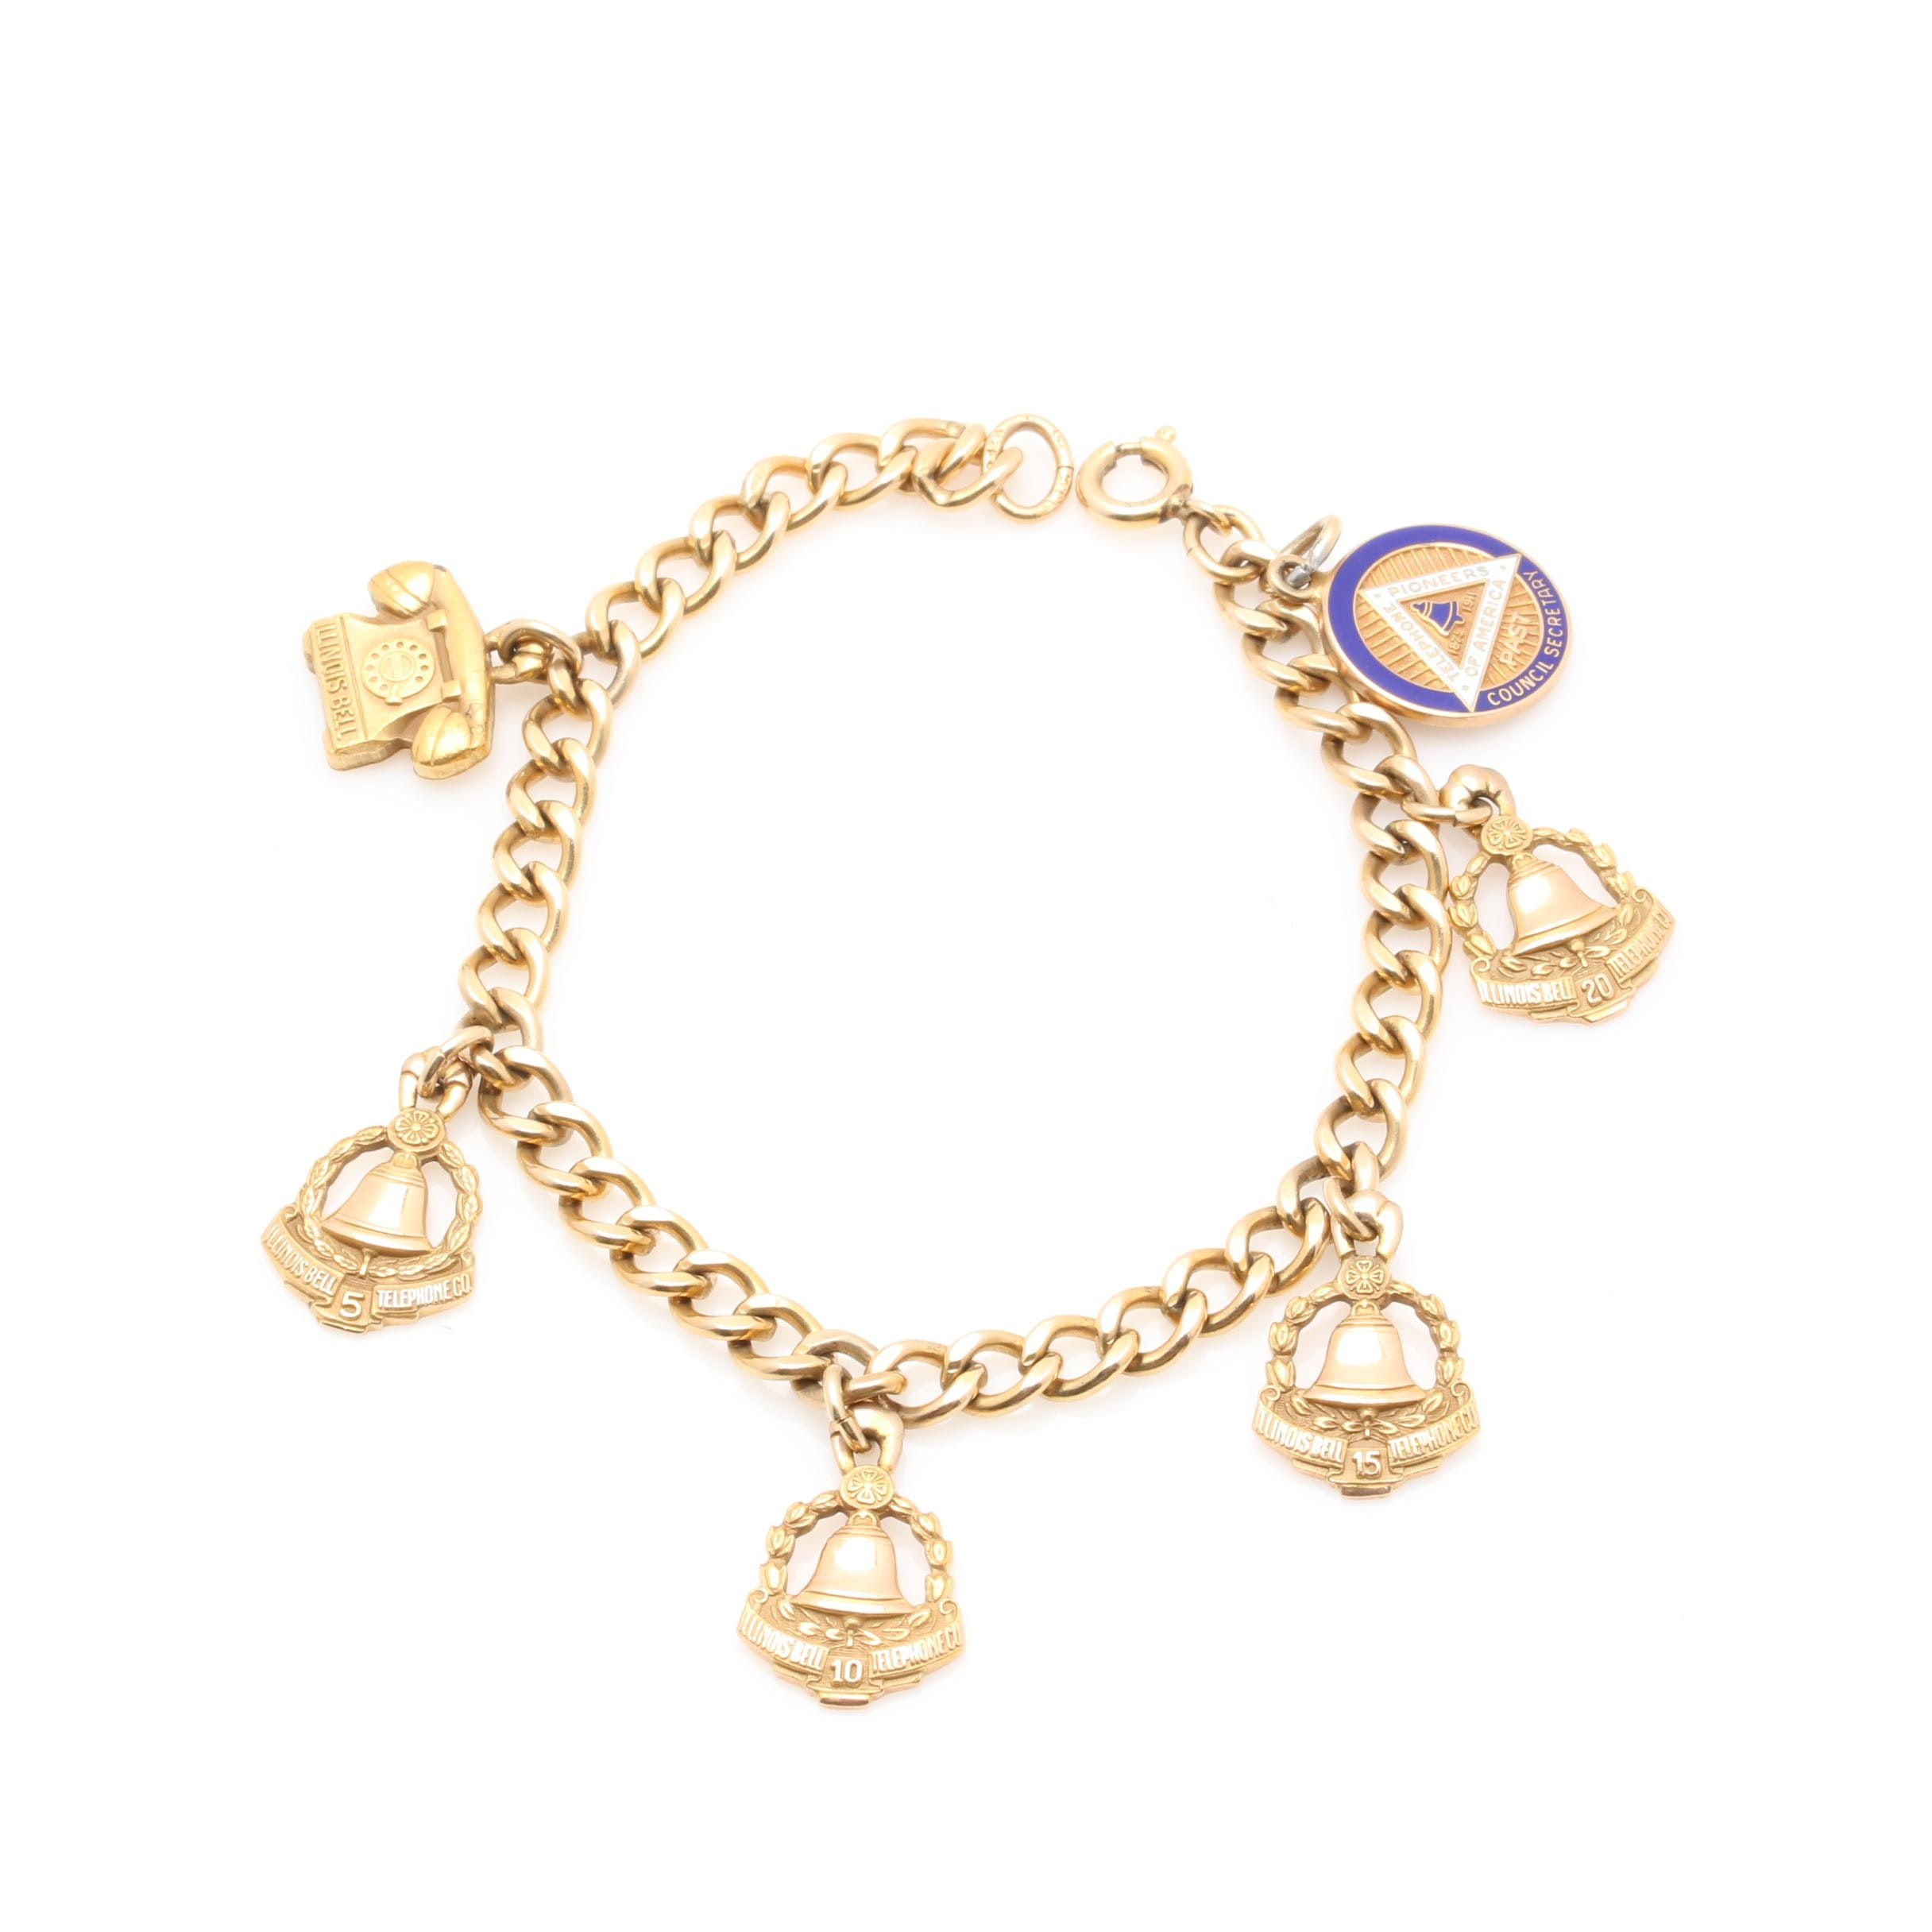 10K Yellow Gold and 12K Gold Filled Service Charm Bracelet